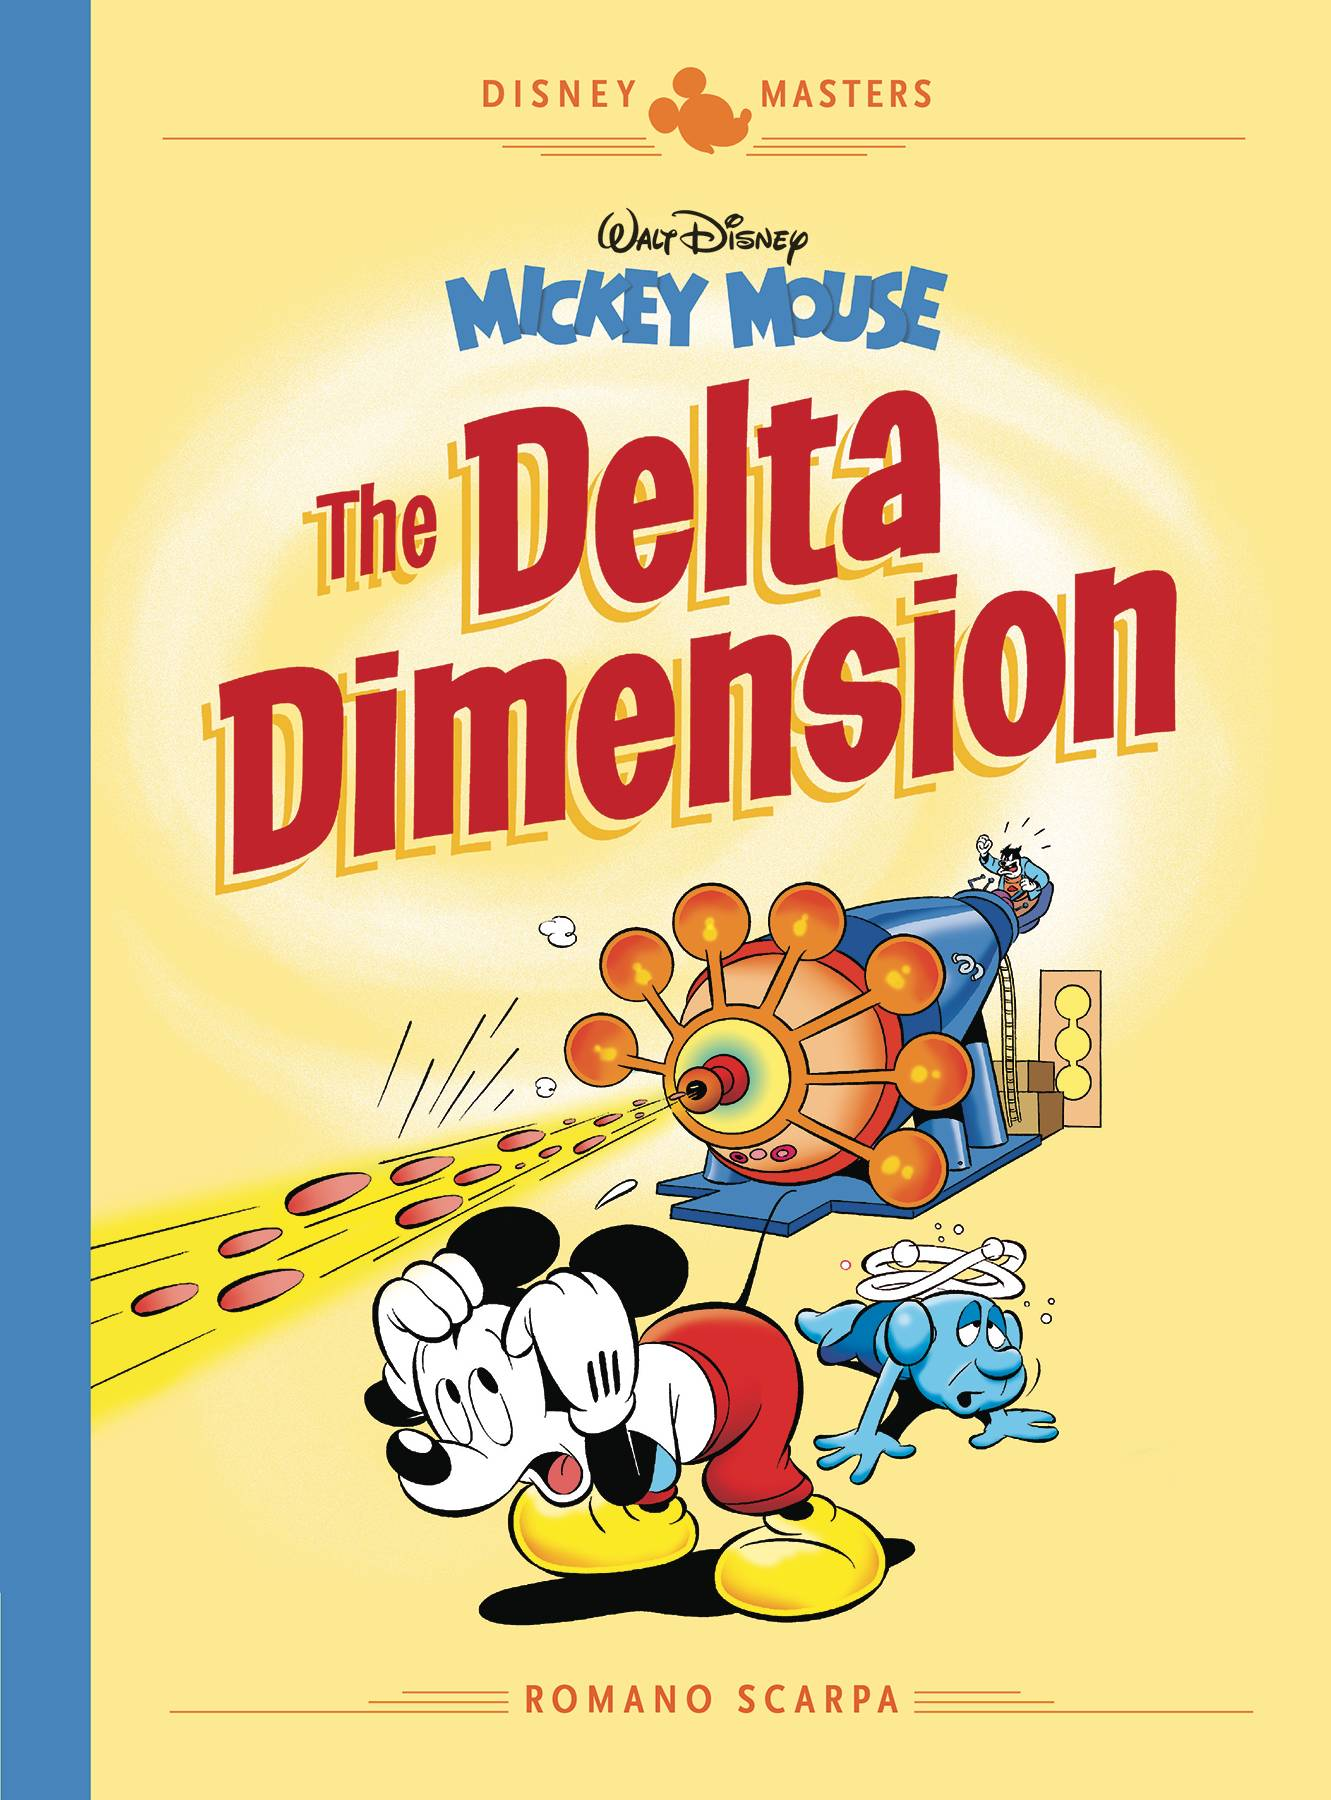 DISNEY MASTERS HC VOL 01 SCARPA MICKEY MOUSE DELTA DIMENSION